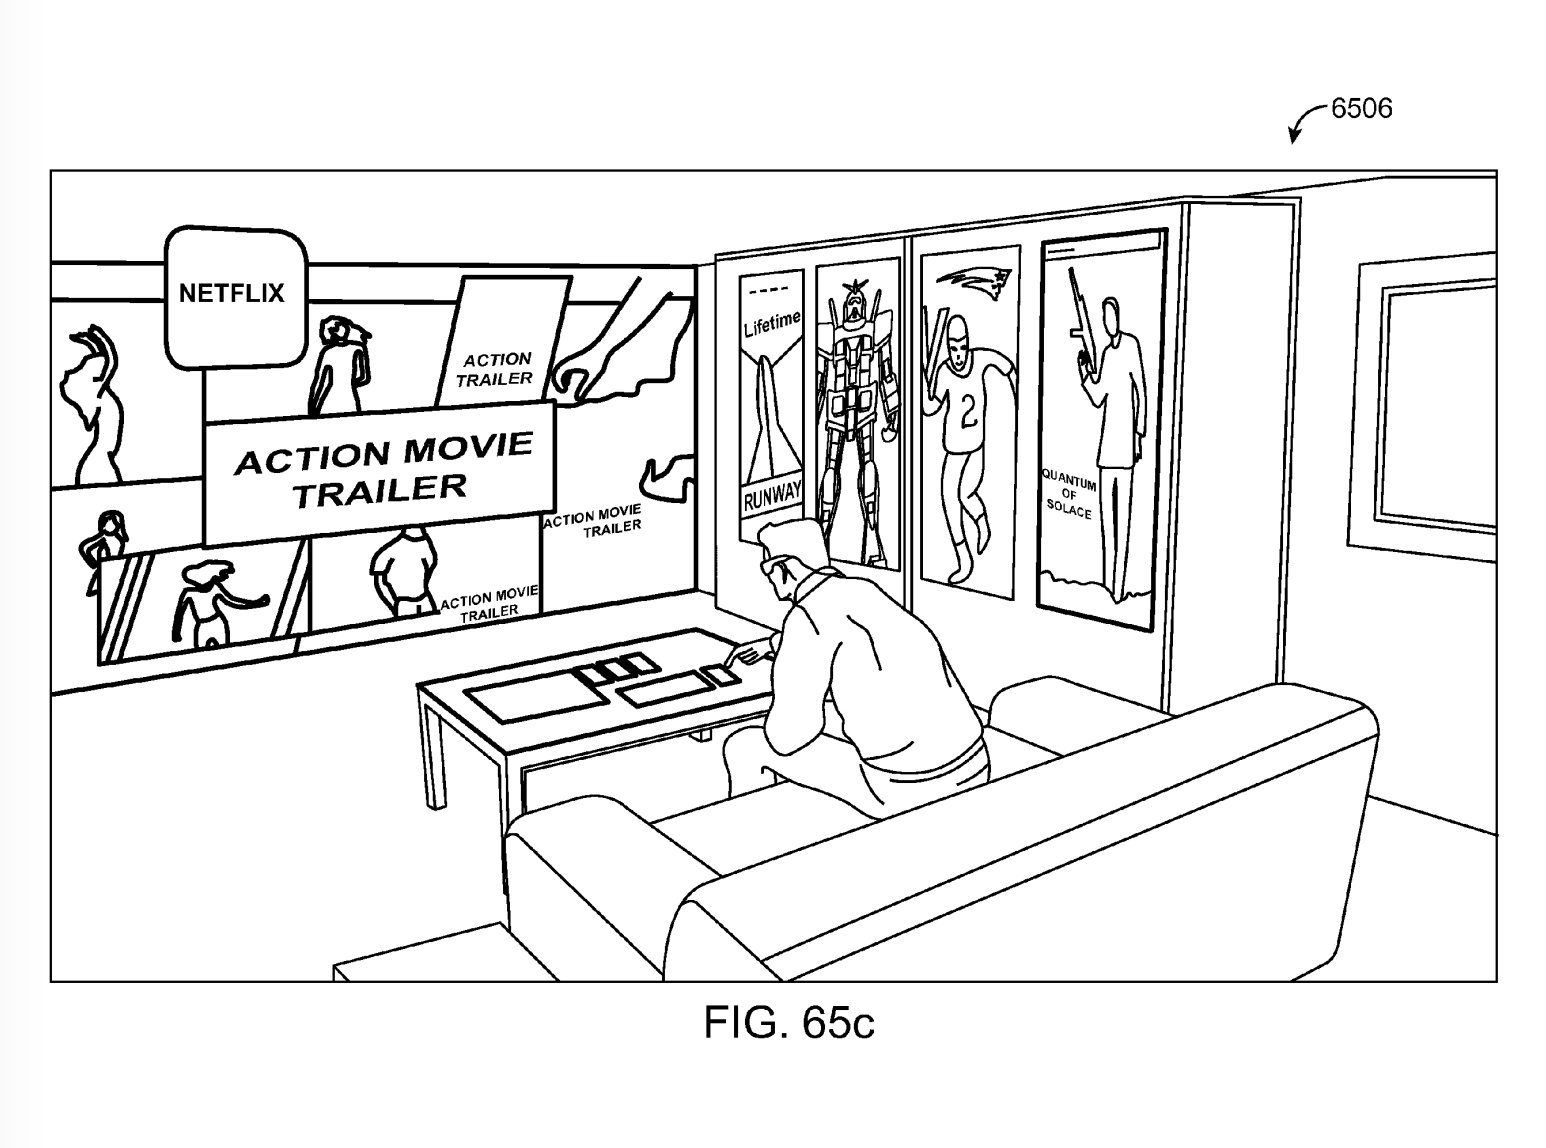 1546x1148 See The Beautiful, Nightmarish Patent Illustrations For A Google